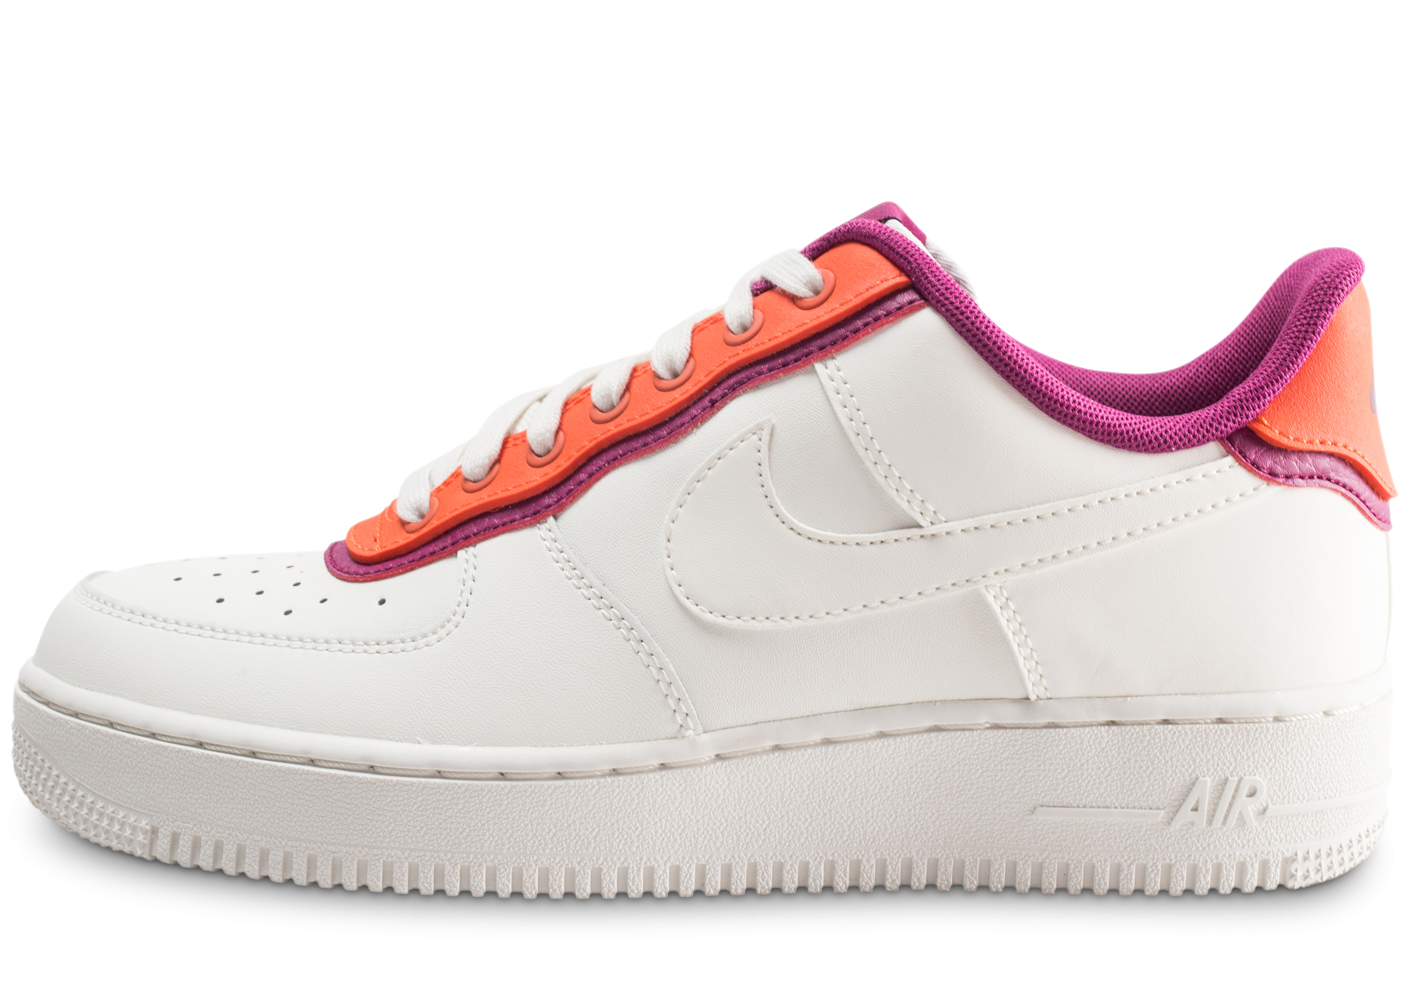 Nike Air Force 1 07 LV8 blanc orange violet